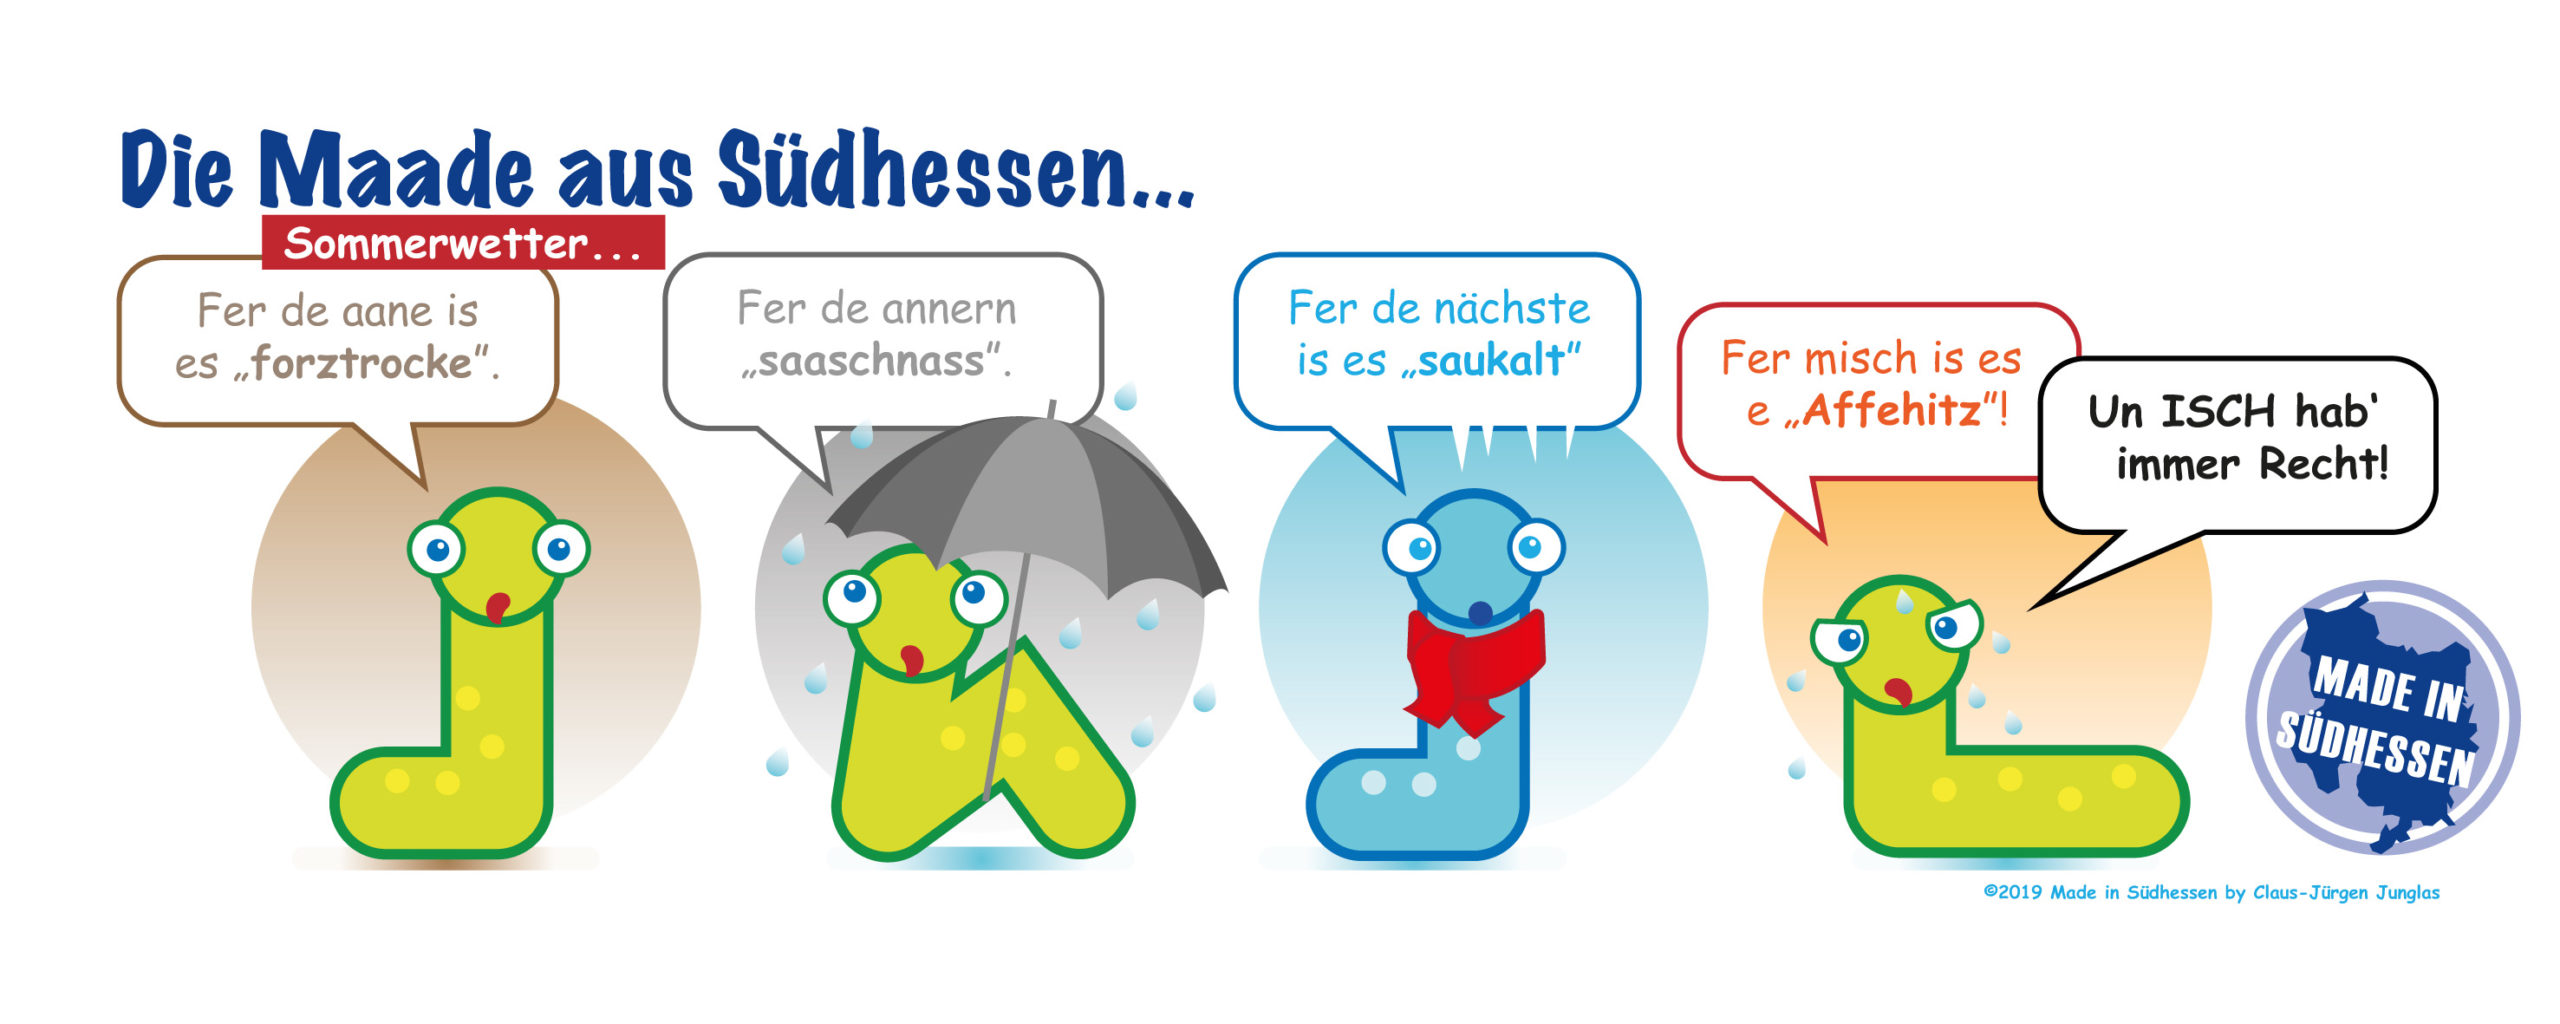 Jeder fühl Wetter anders...